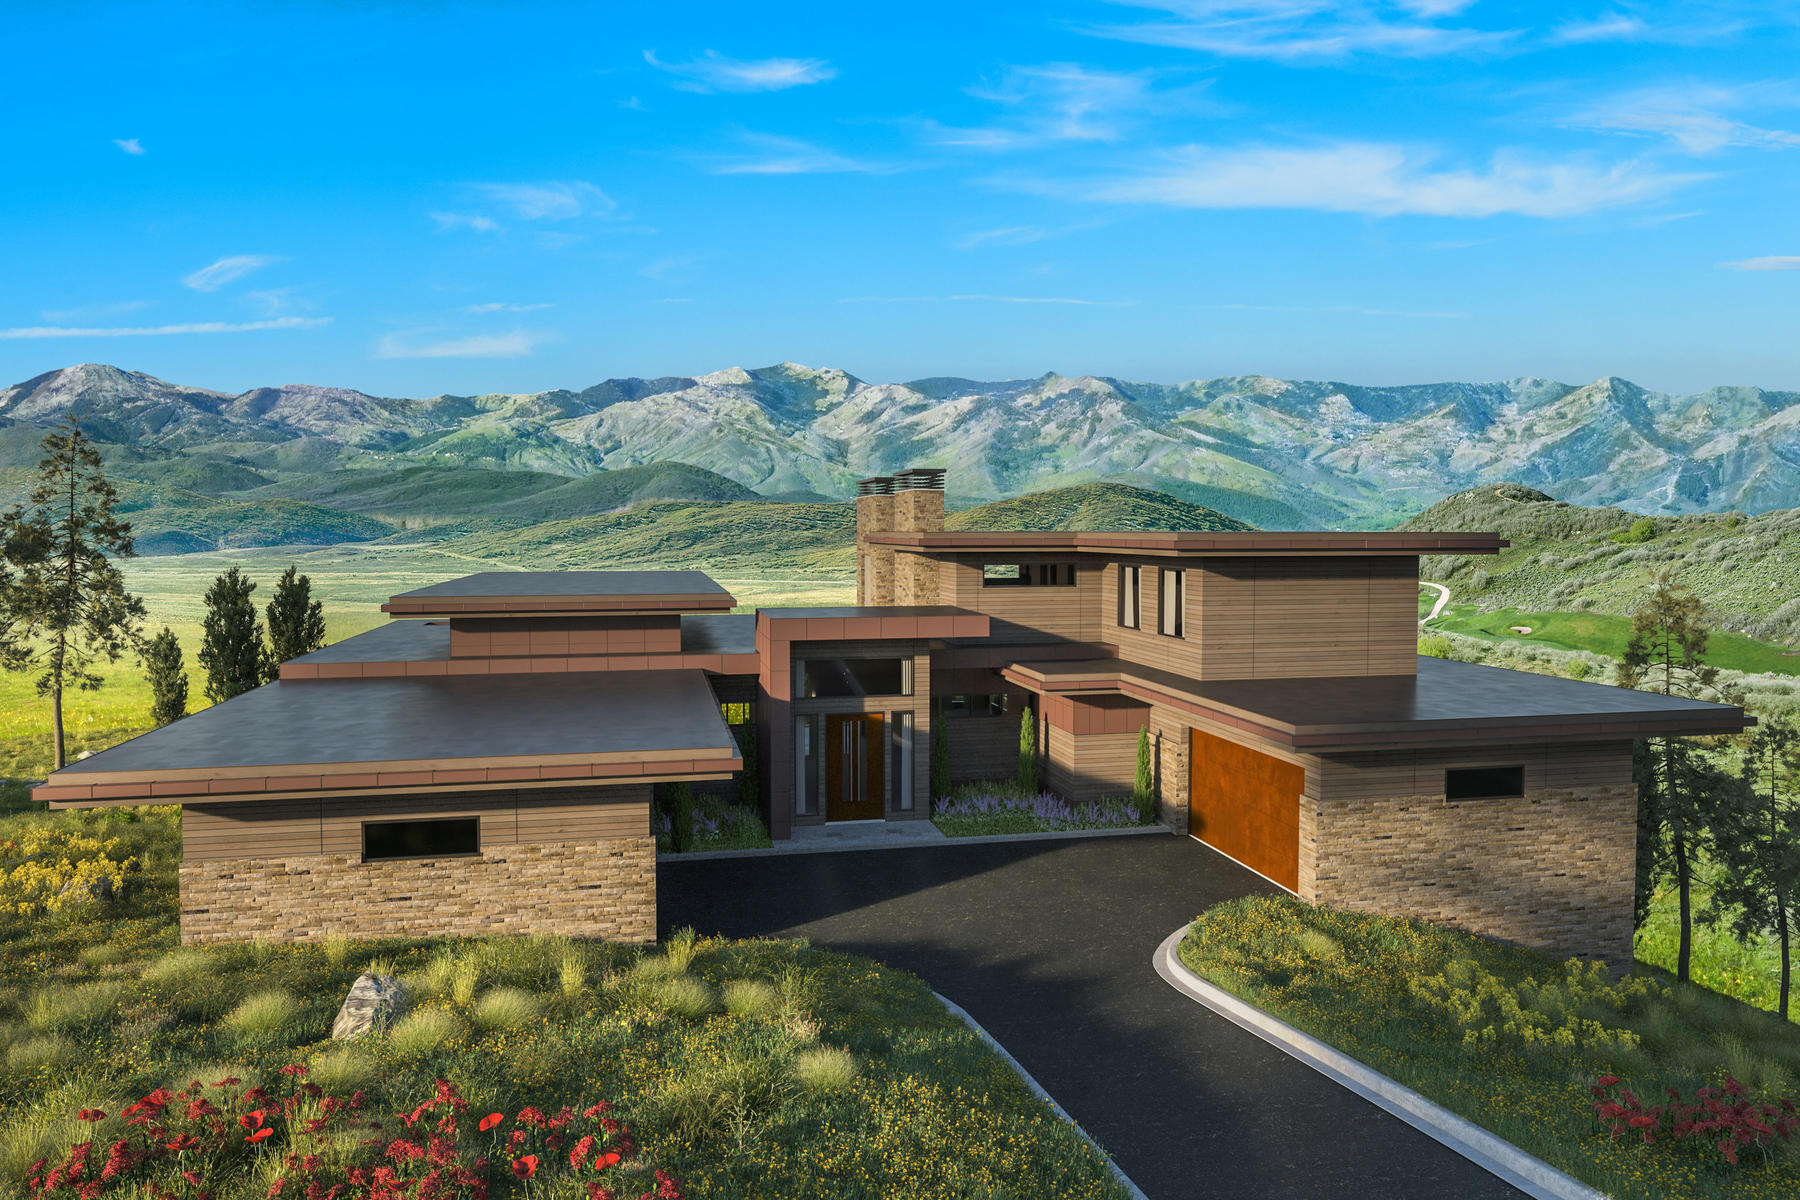 Single Family Homes for Sale at Bradford Model In Pinnacle At Promontory 3718 Wapiti Canyon Rd, Park City, Utah 84098 United States